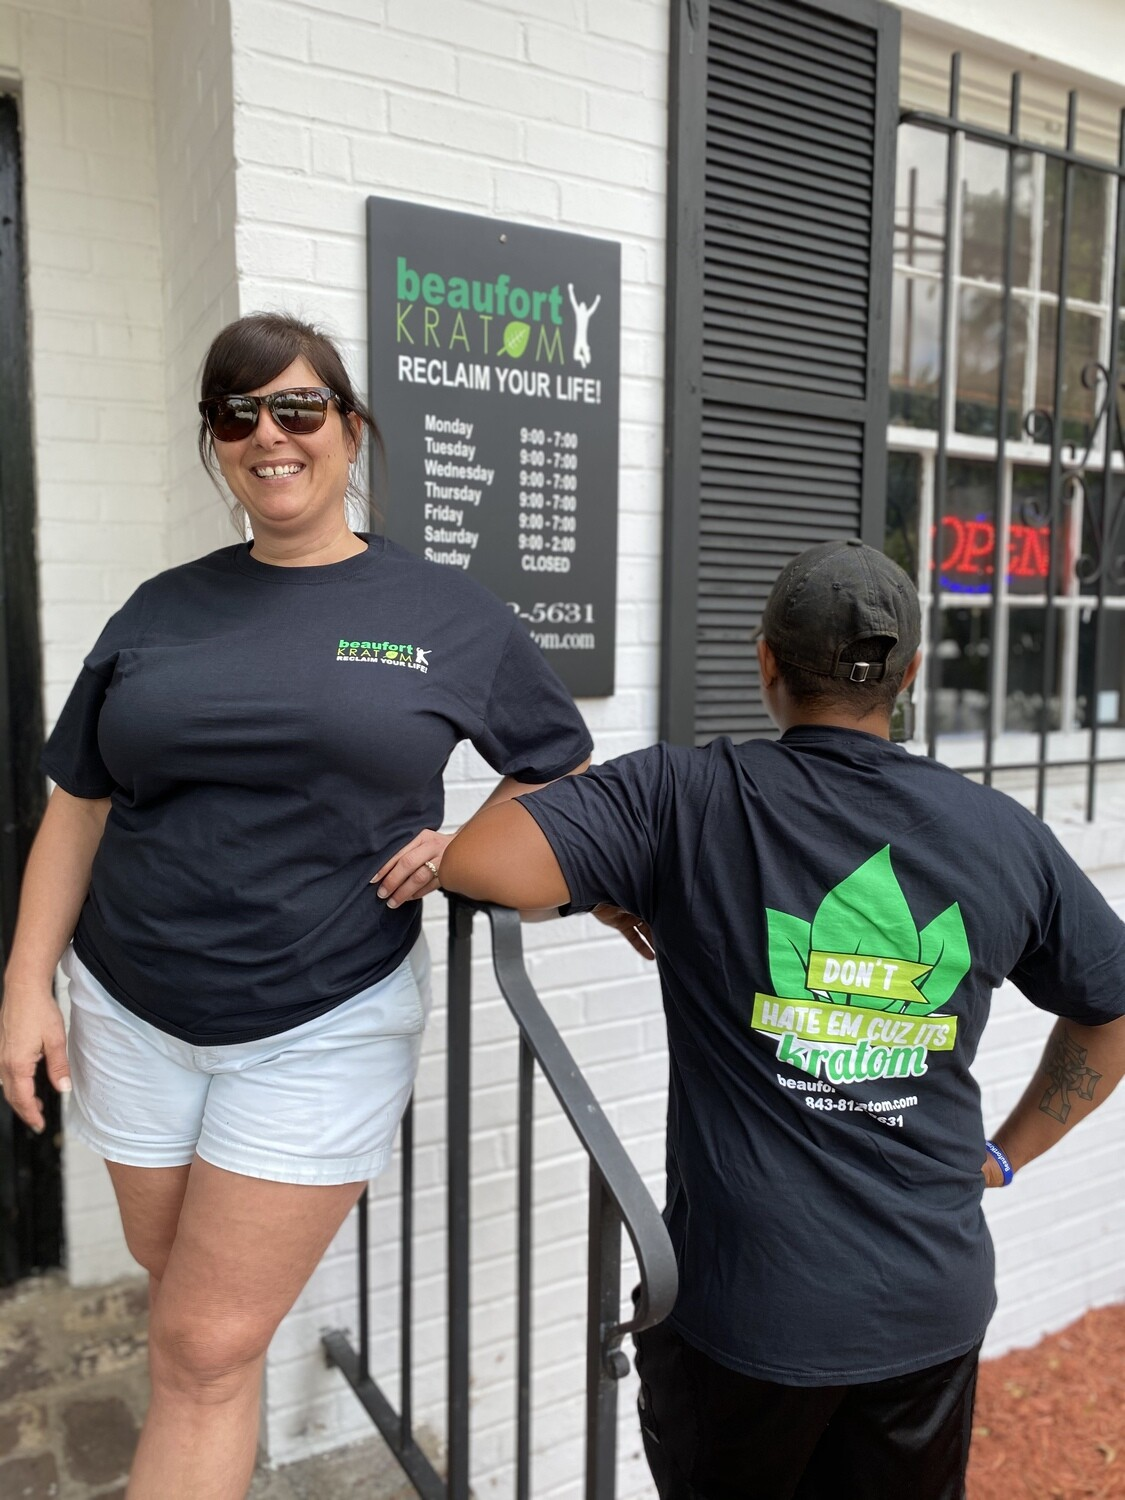 Beaufort Kratom T-Shirts (Don't Hate Em)